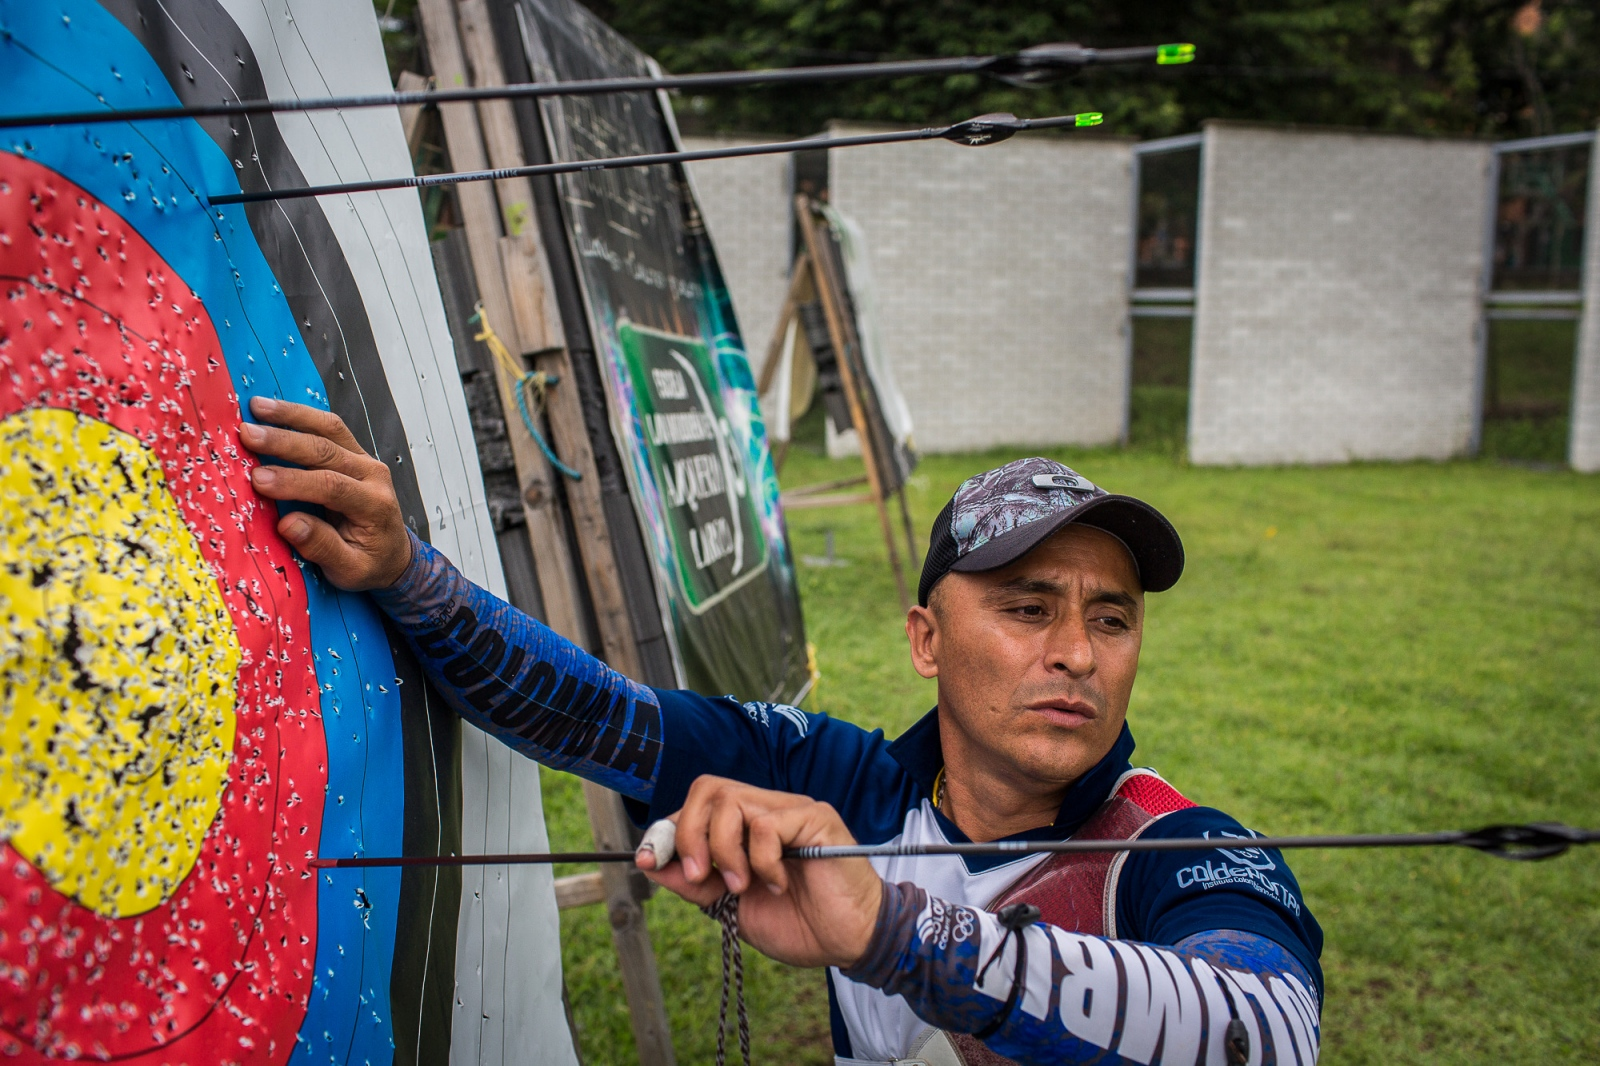 German Gomez, 49, collects the arrows from the target sign during a practice session at the Belen Sports Complex, Medellin, 28th April, 2016.